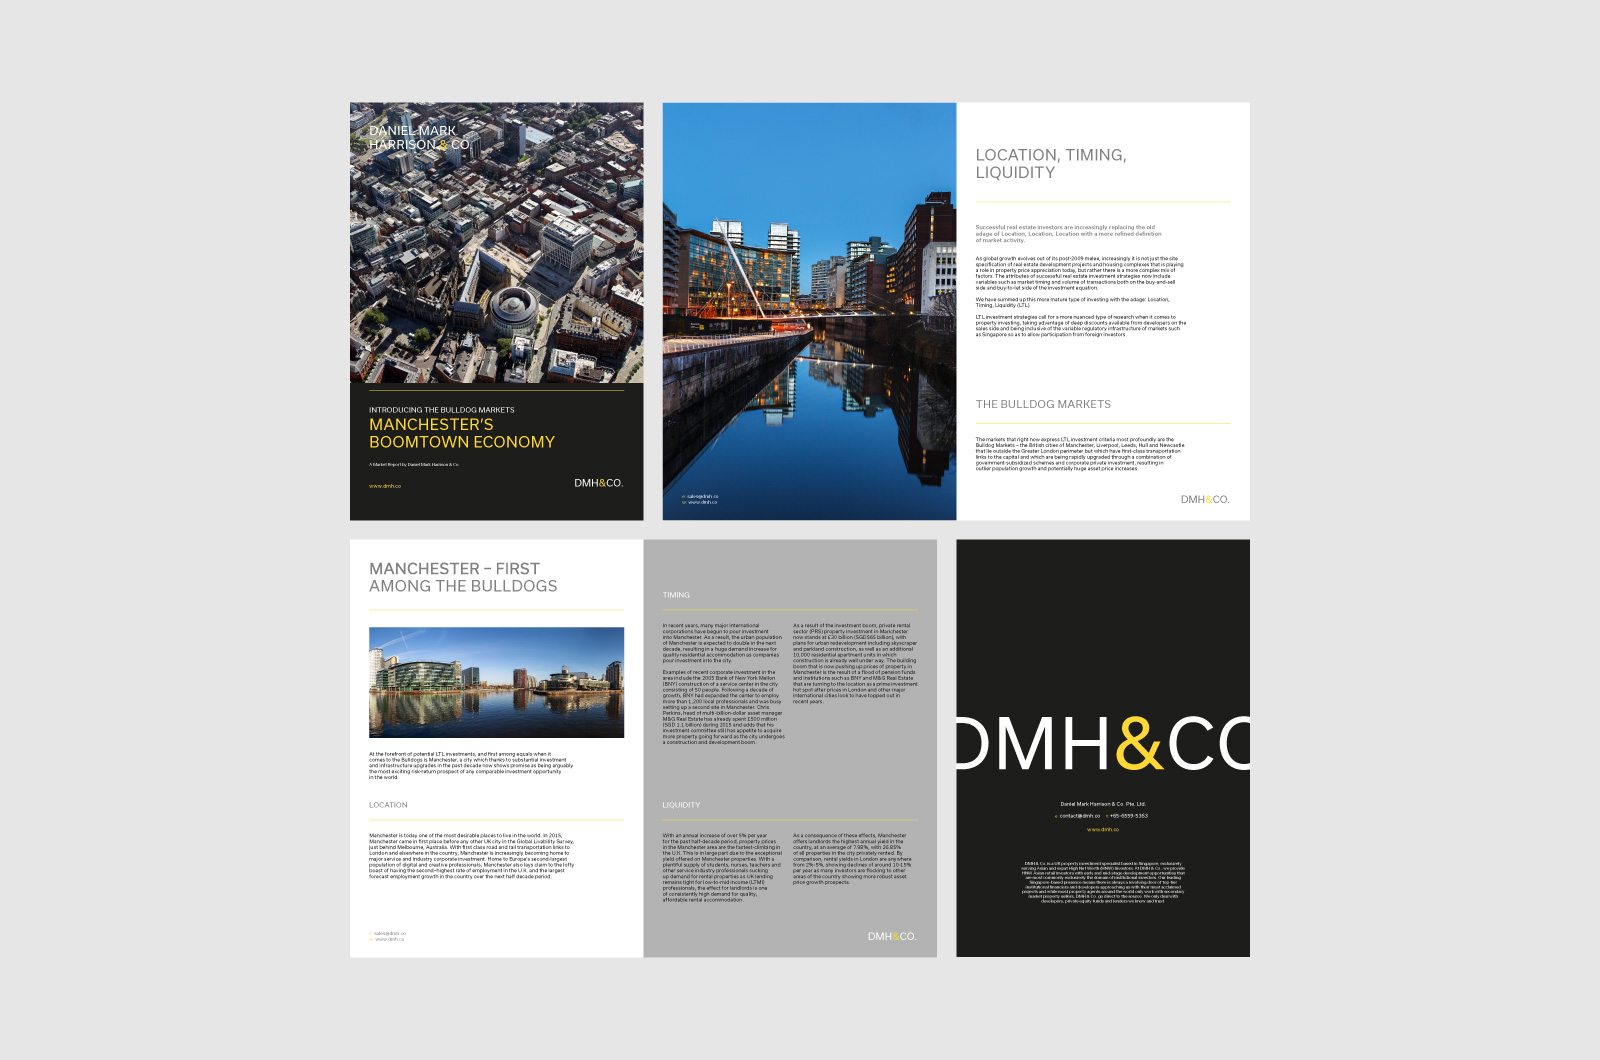 DMH&CO Digital Guide